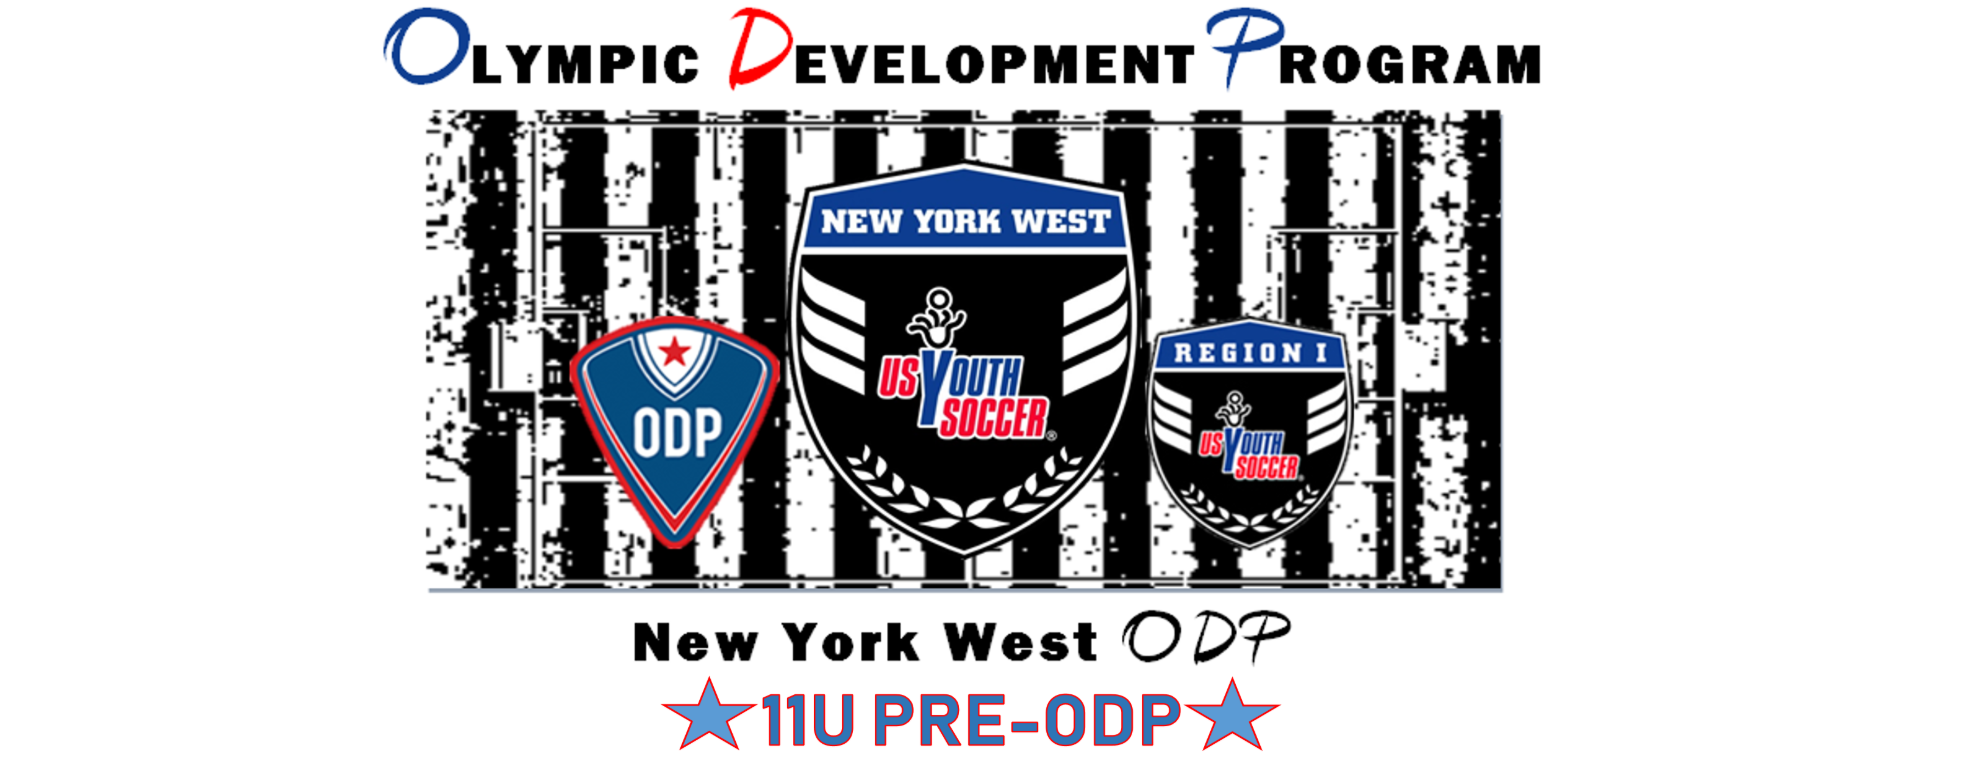 2019/20 11U Pre-ODP Sites and Dates Announced